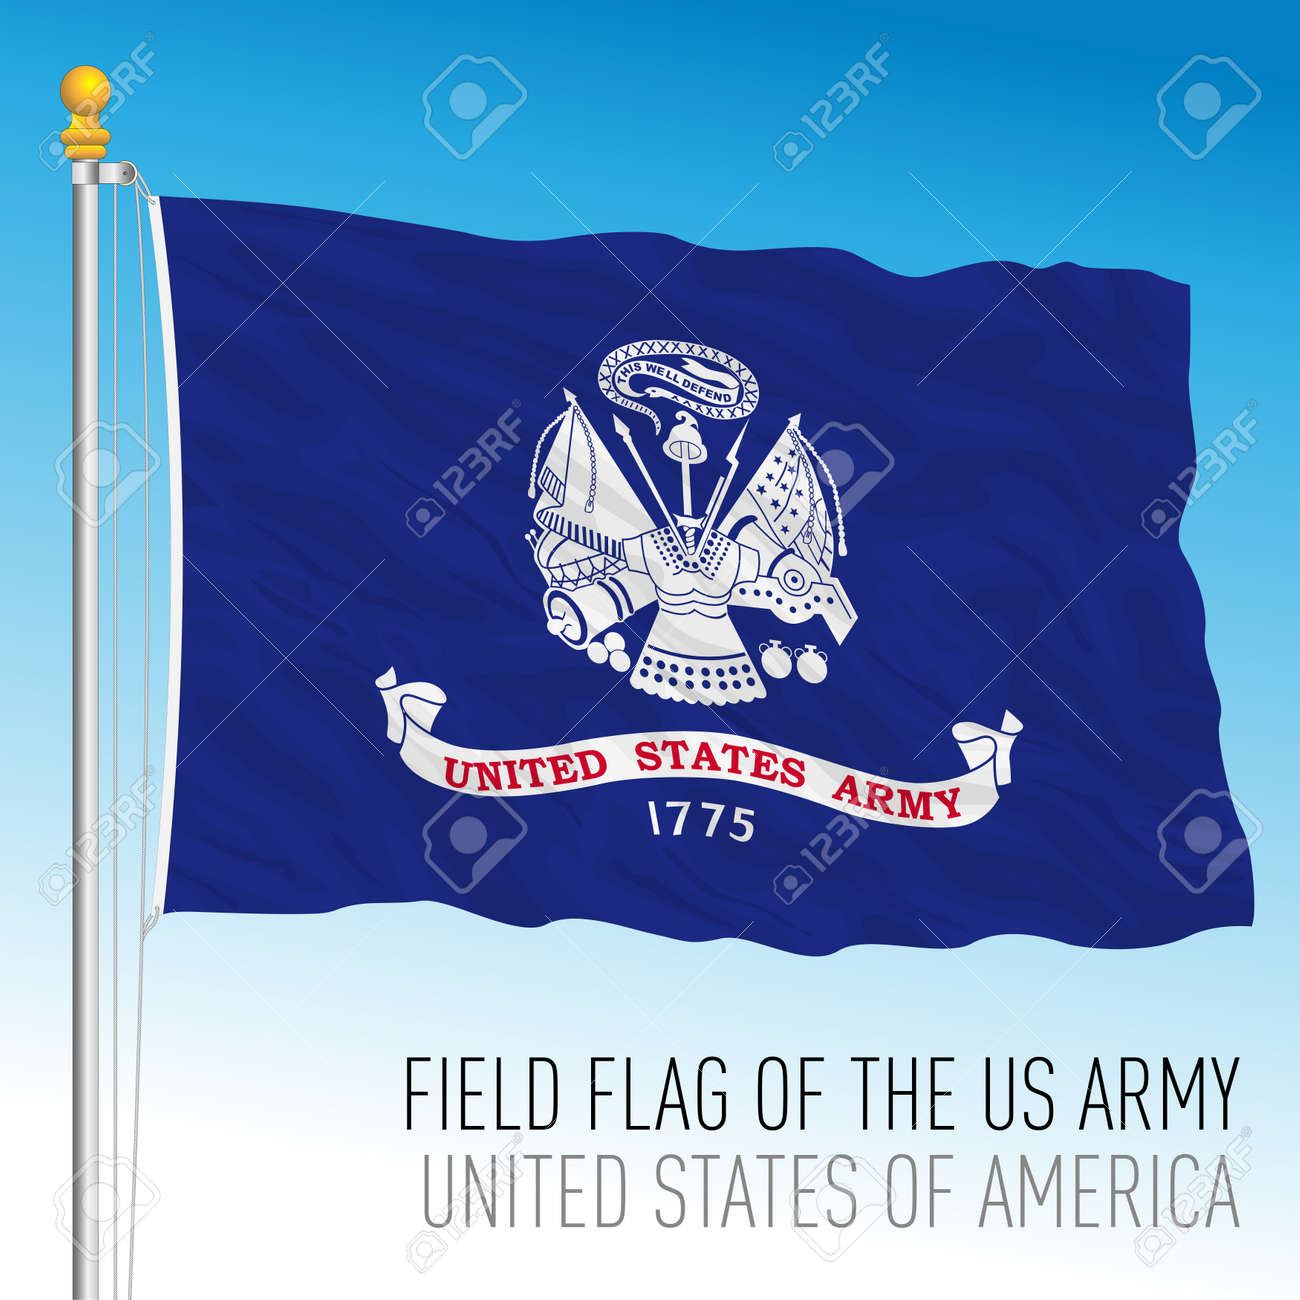 US Army field flag, United States of America, vector illustration - 172626031